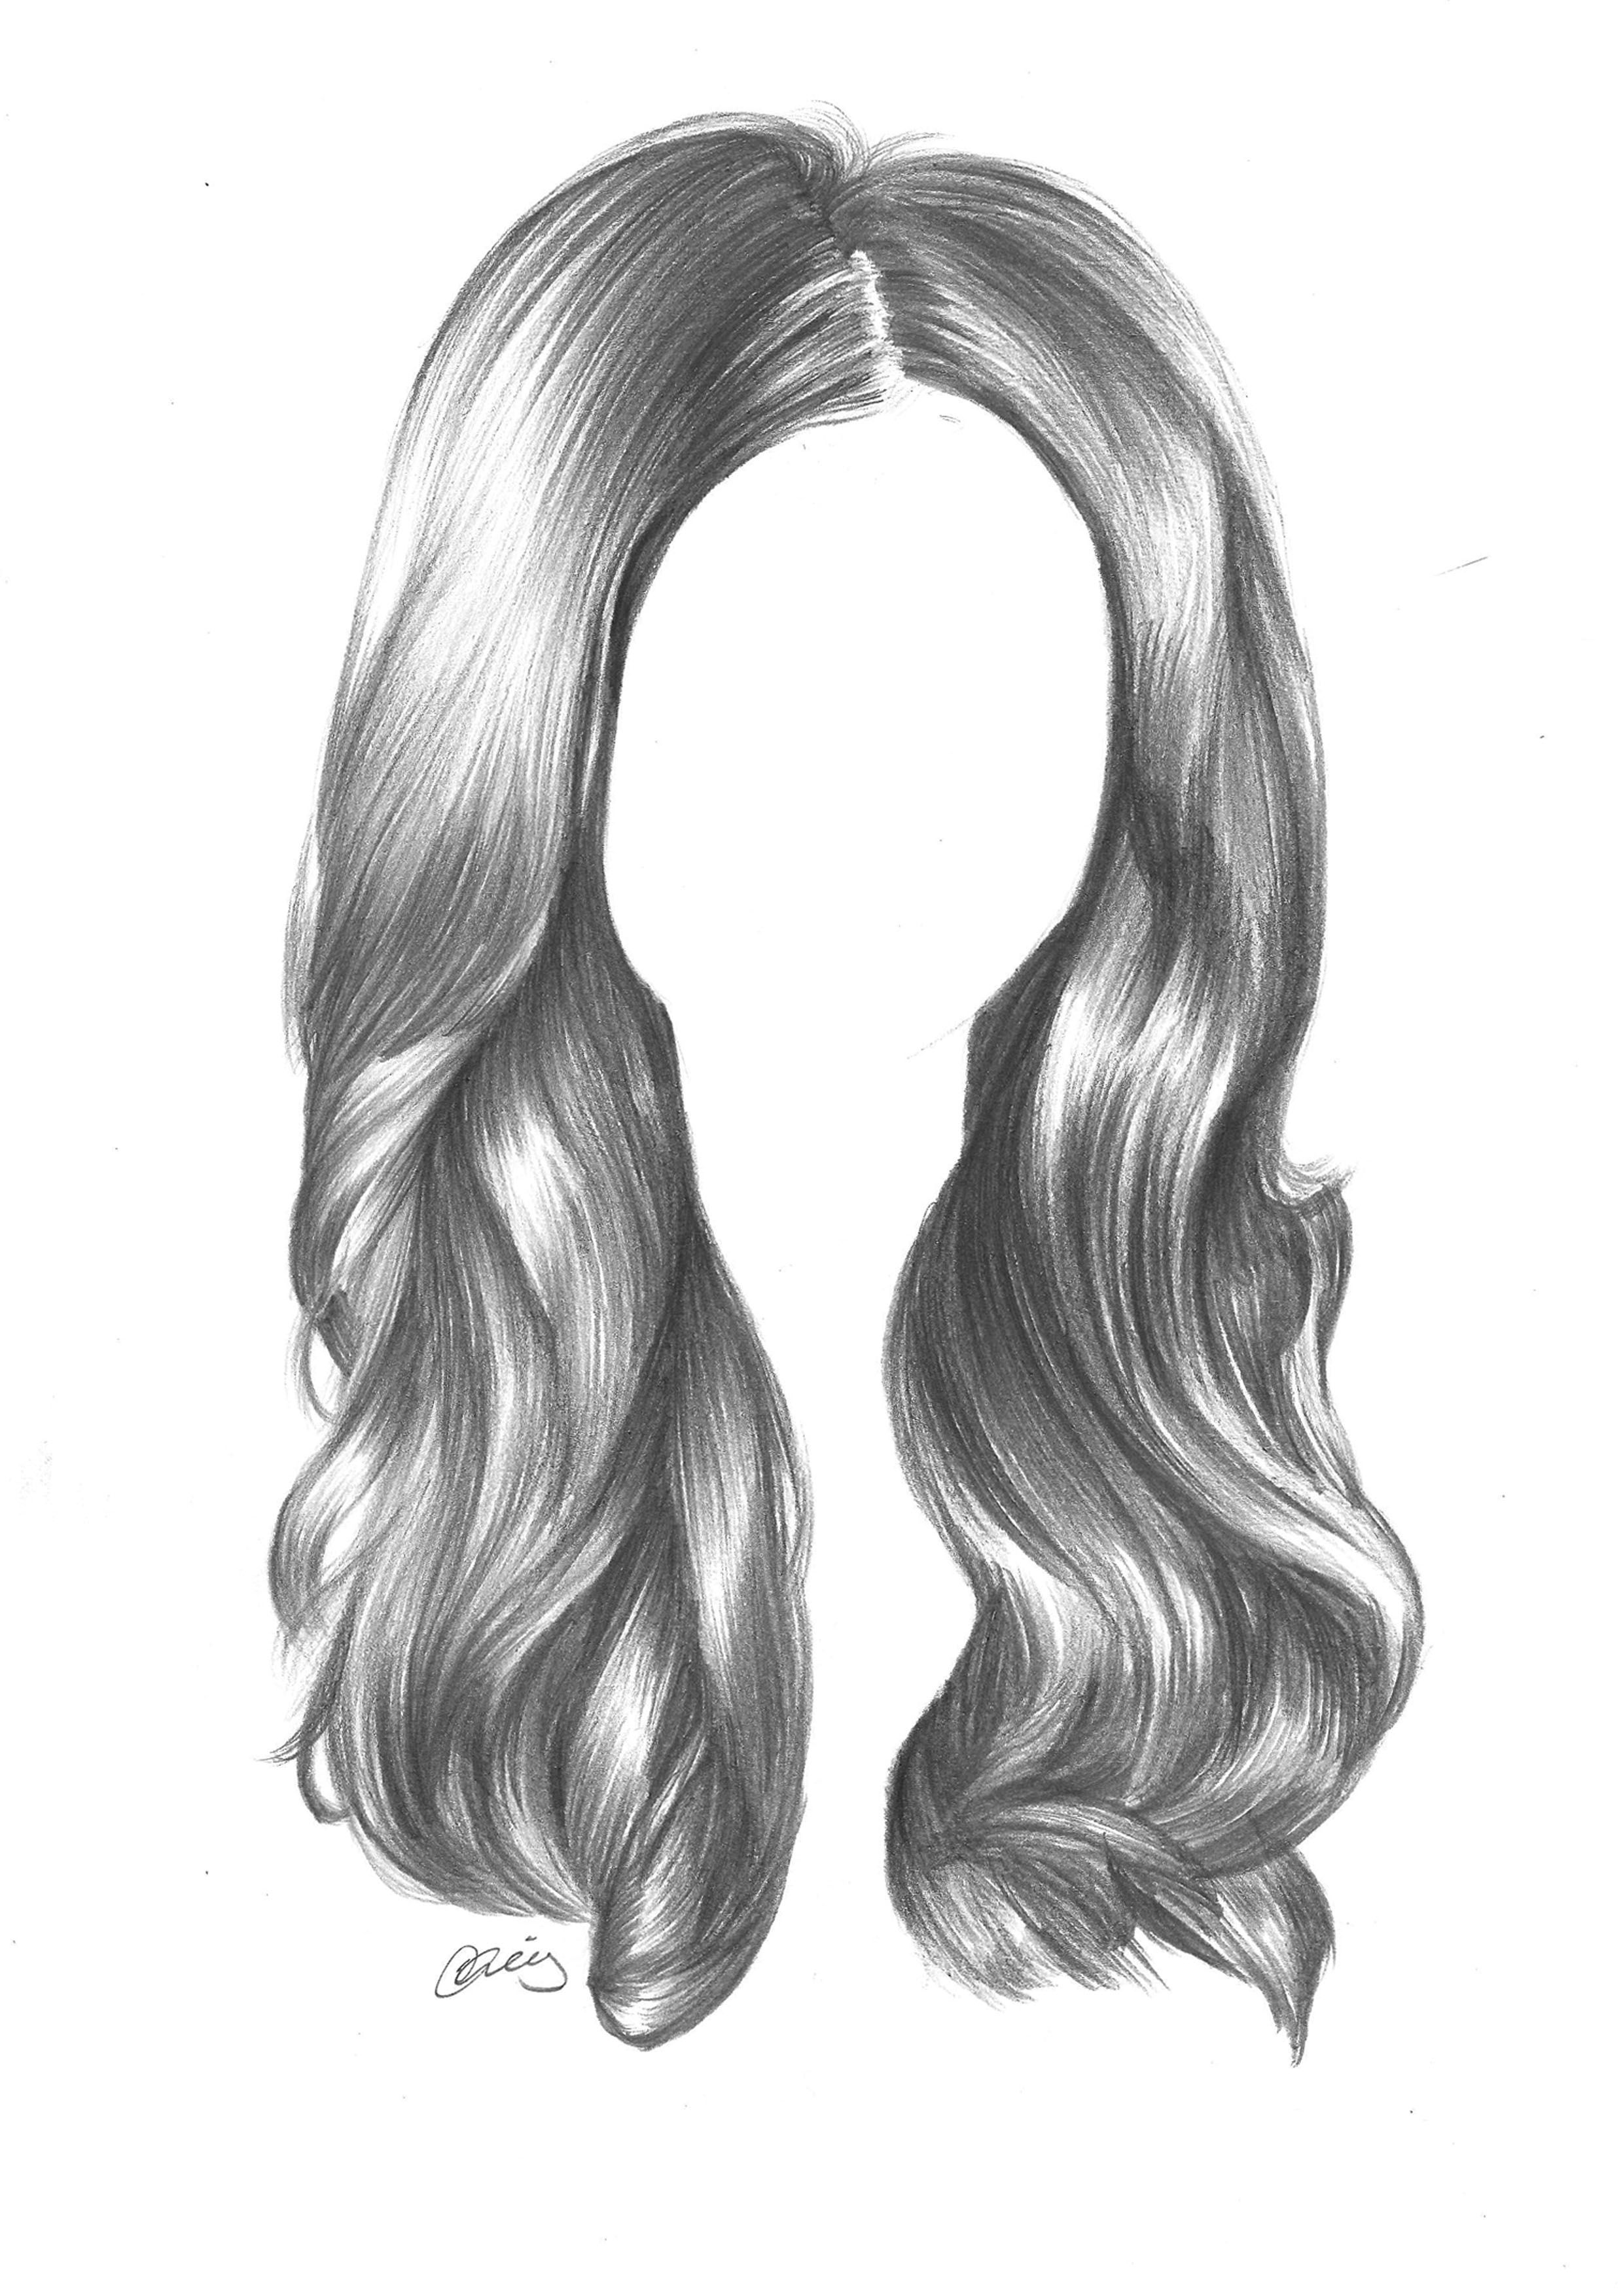 Using standard graphite pencils to draw hair draw hair sketch